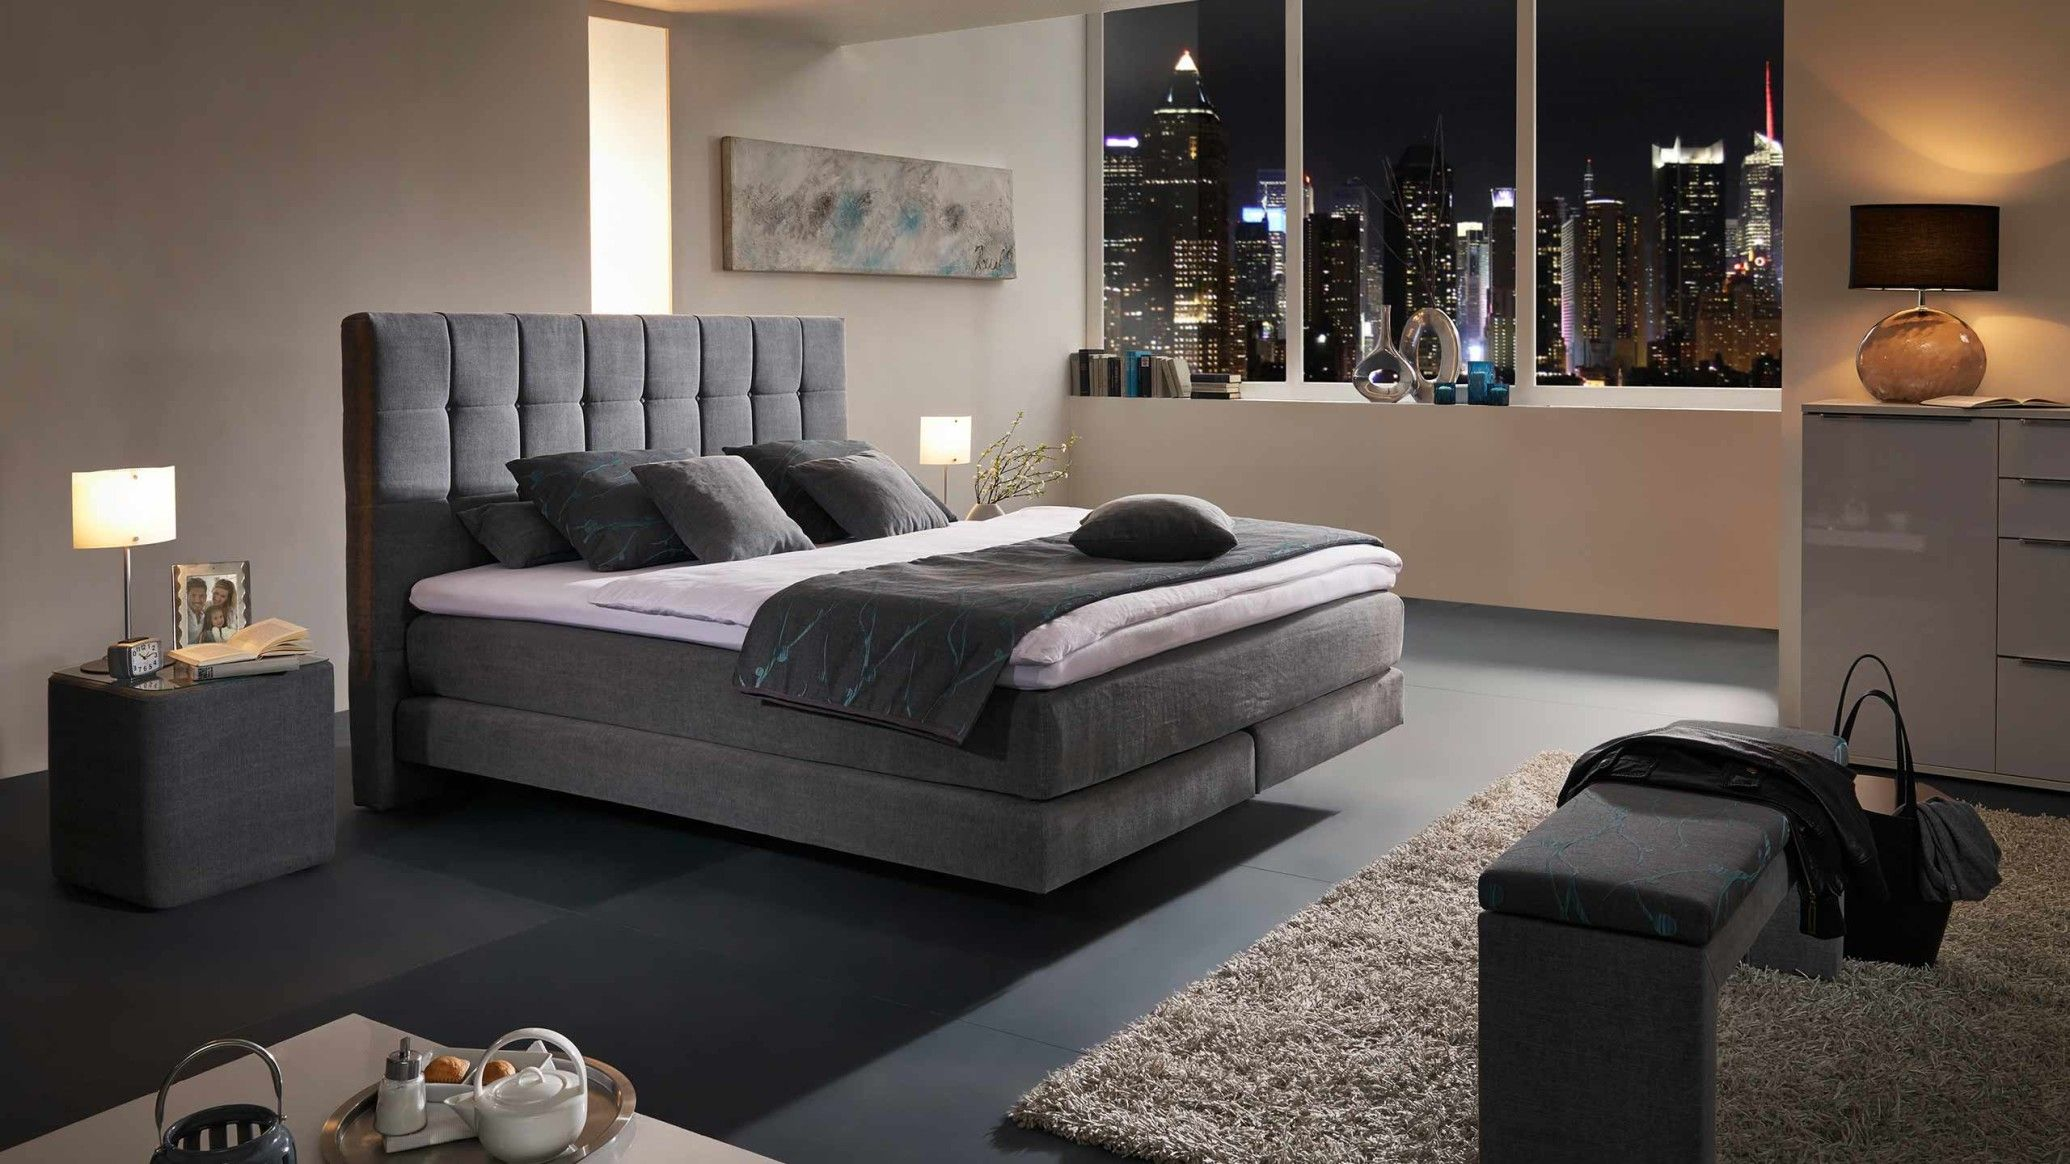 comfortmaster - boxspringbett >>collection<< | bedroom inspiration, Schlafzimmer entwurf